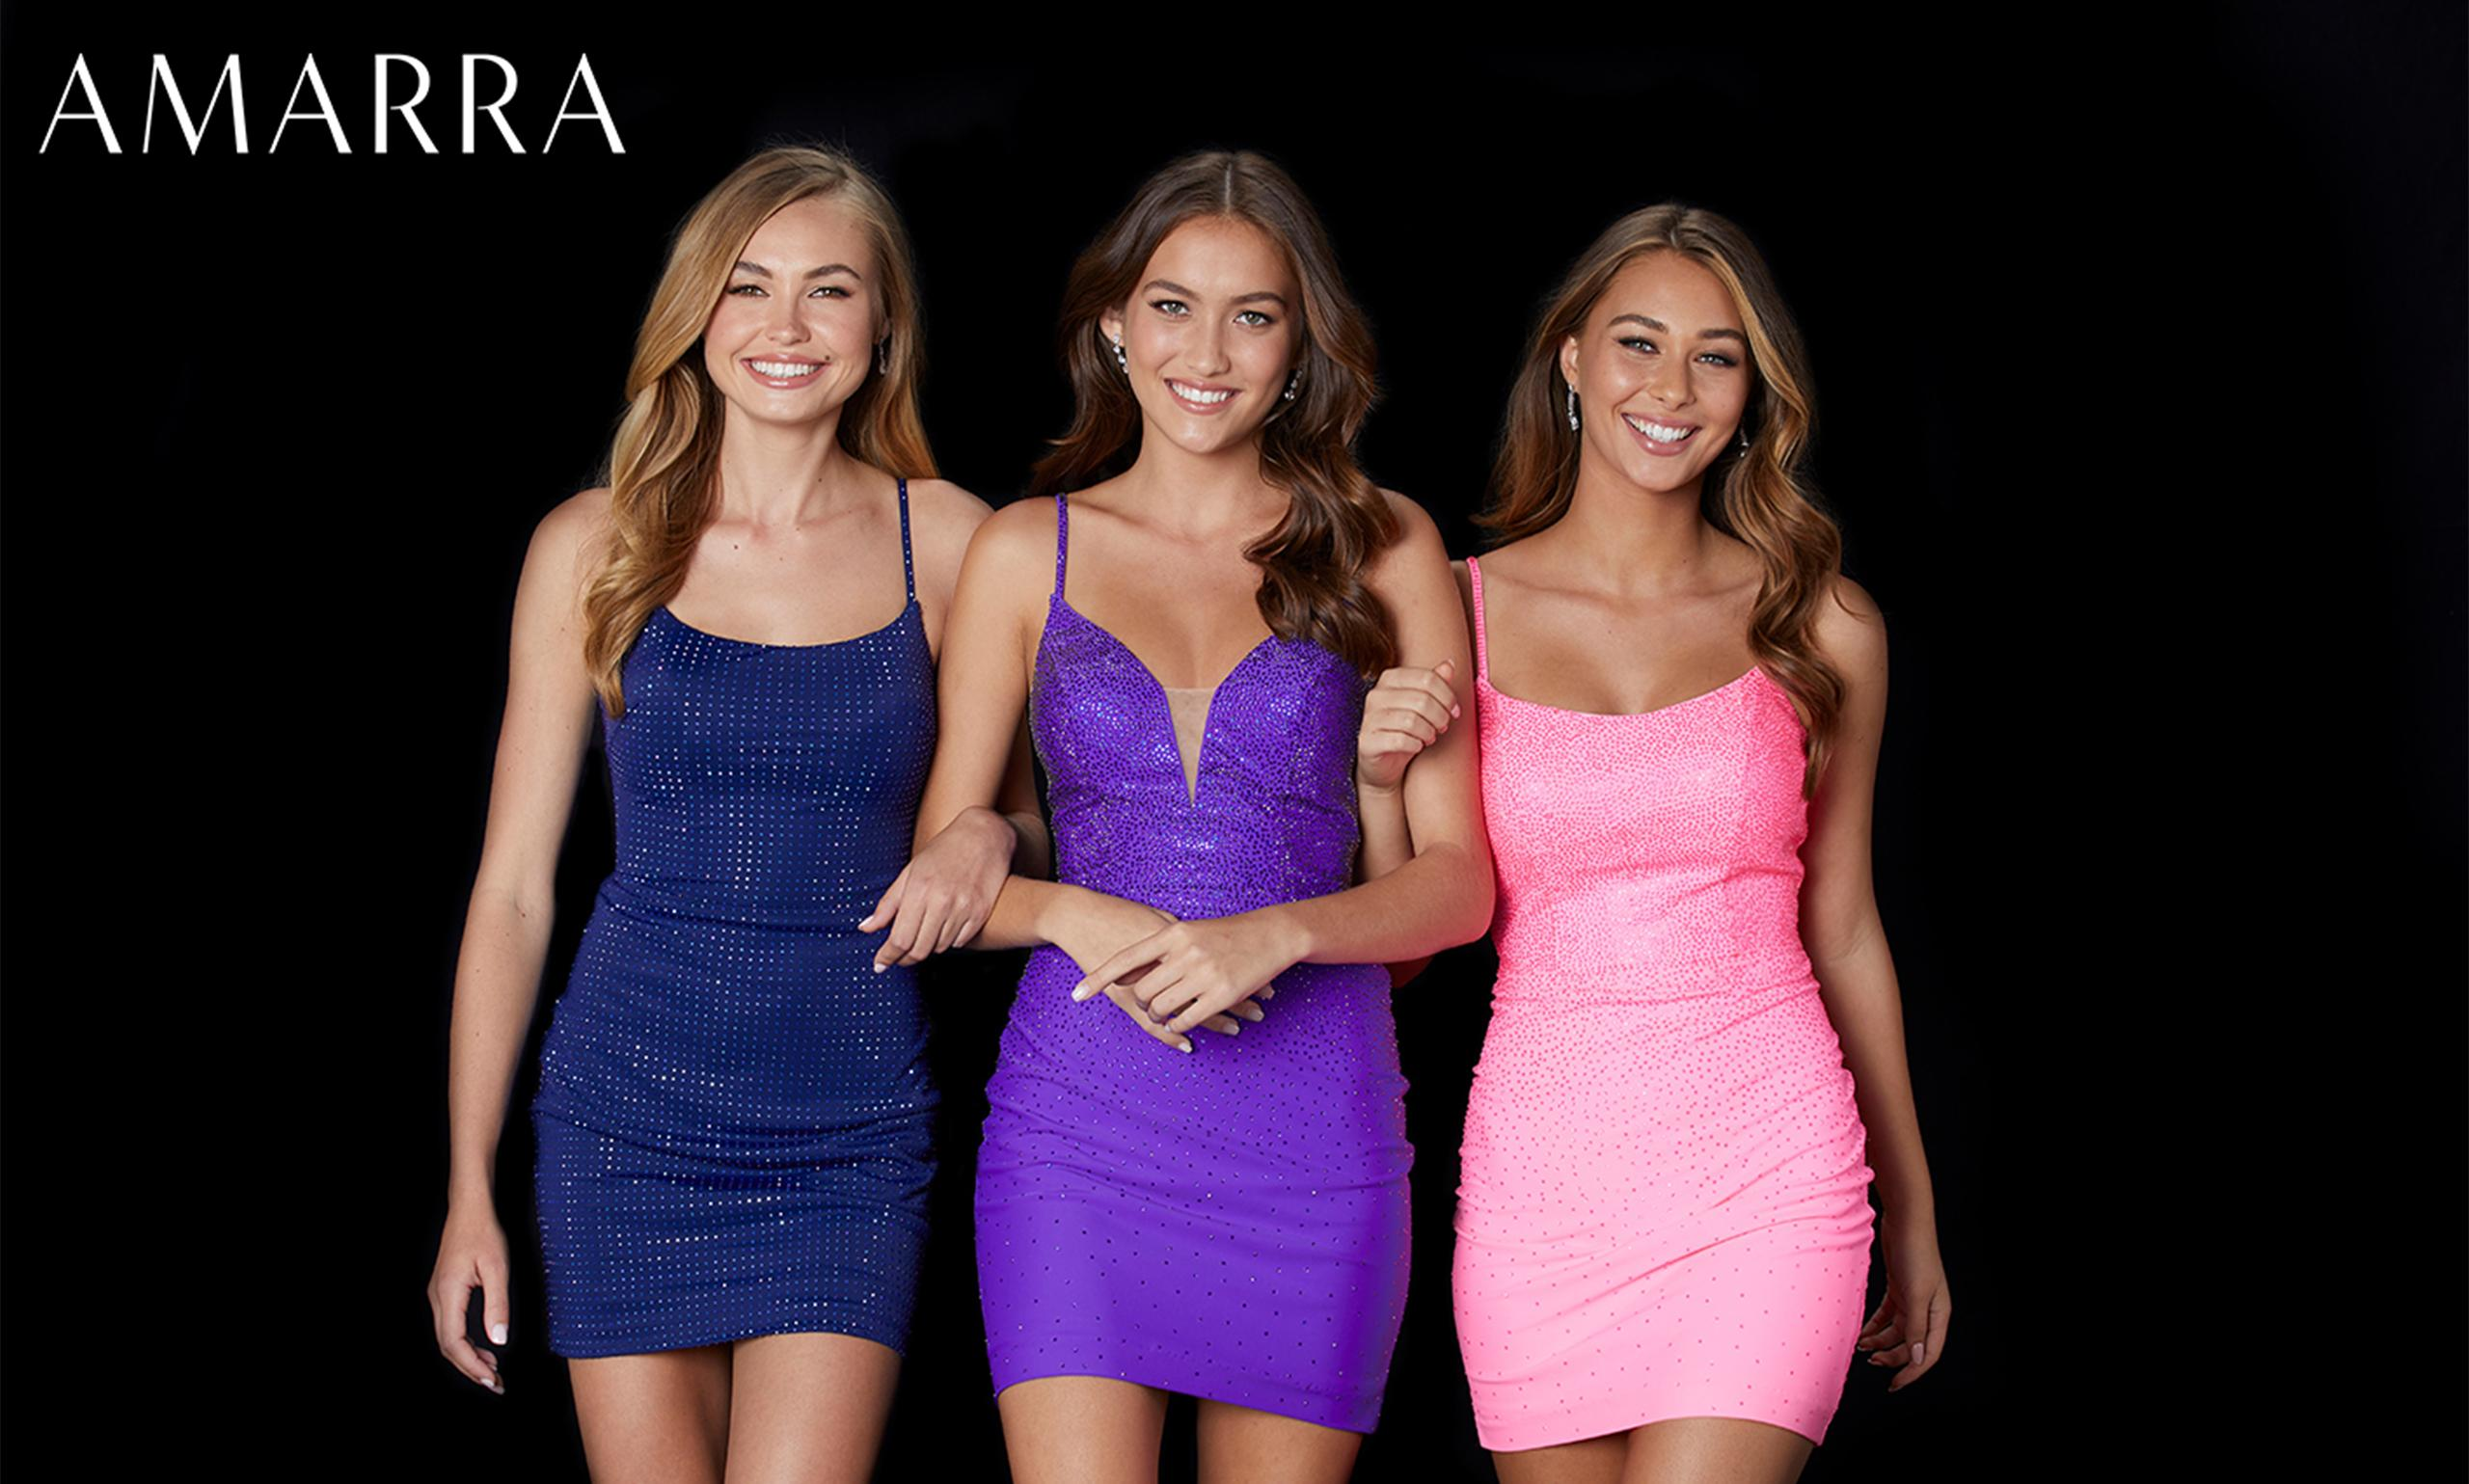 Homecoming Dresses designed by Amarra